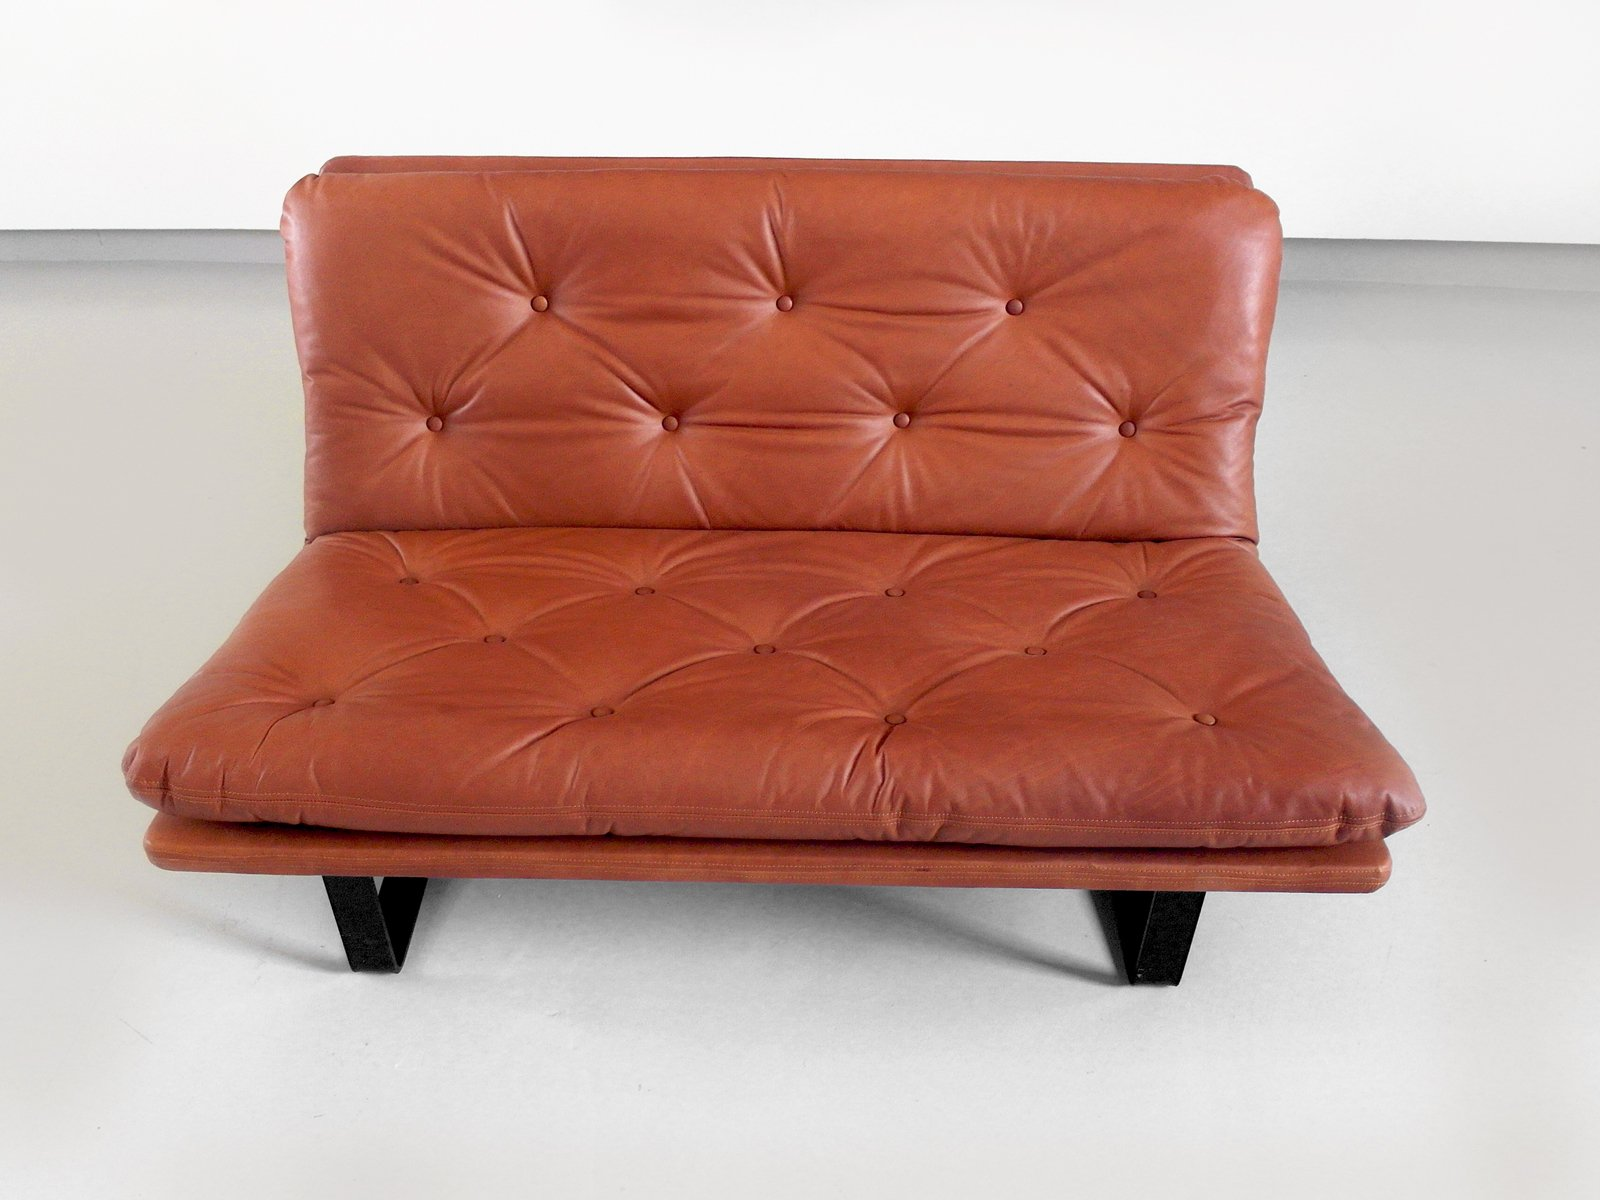 Vintage Loveseat In Cognac Leather By Kho Liang Ie For Artifort For Sale At Pamono